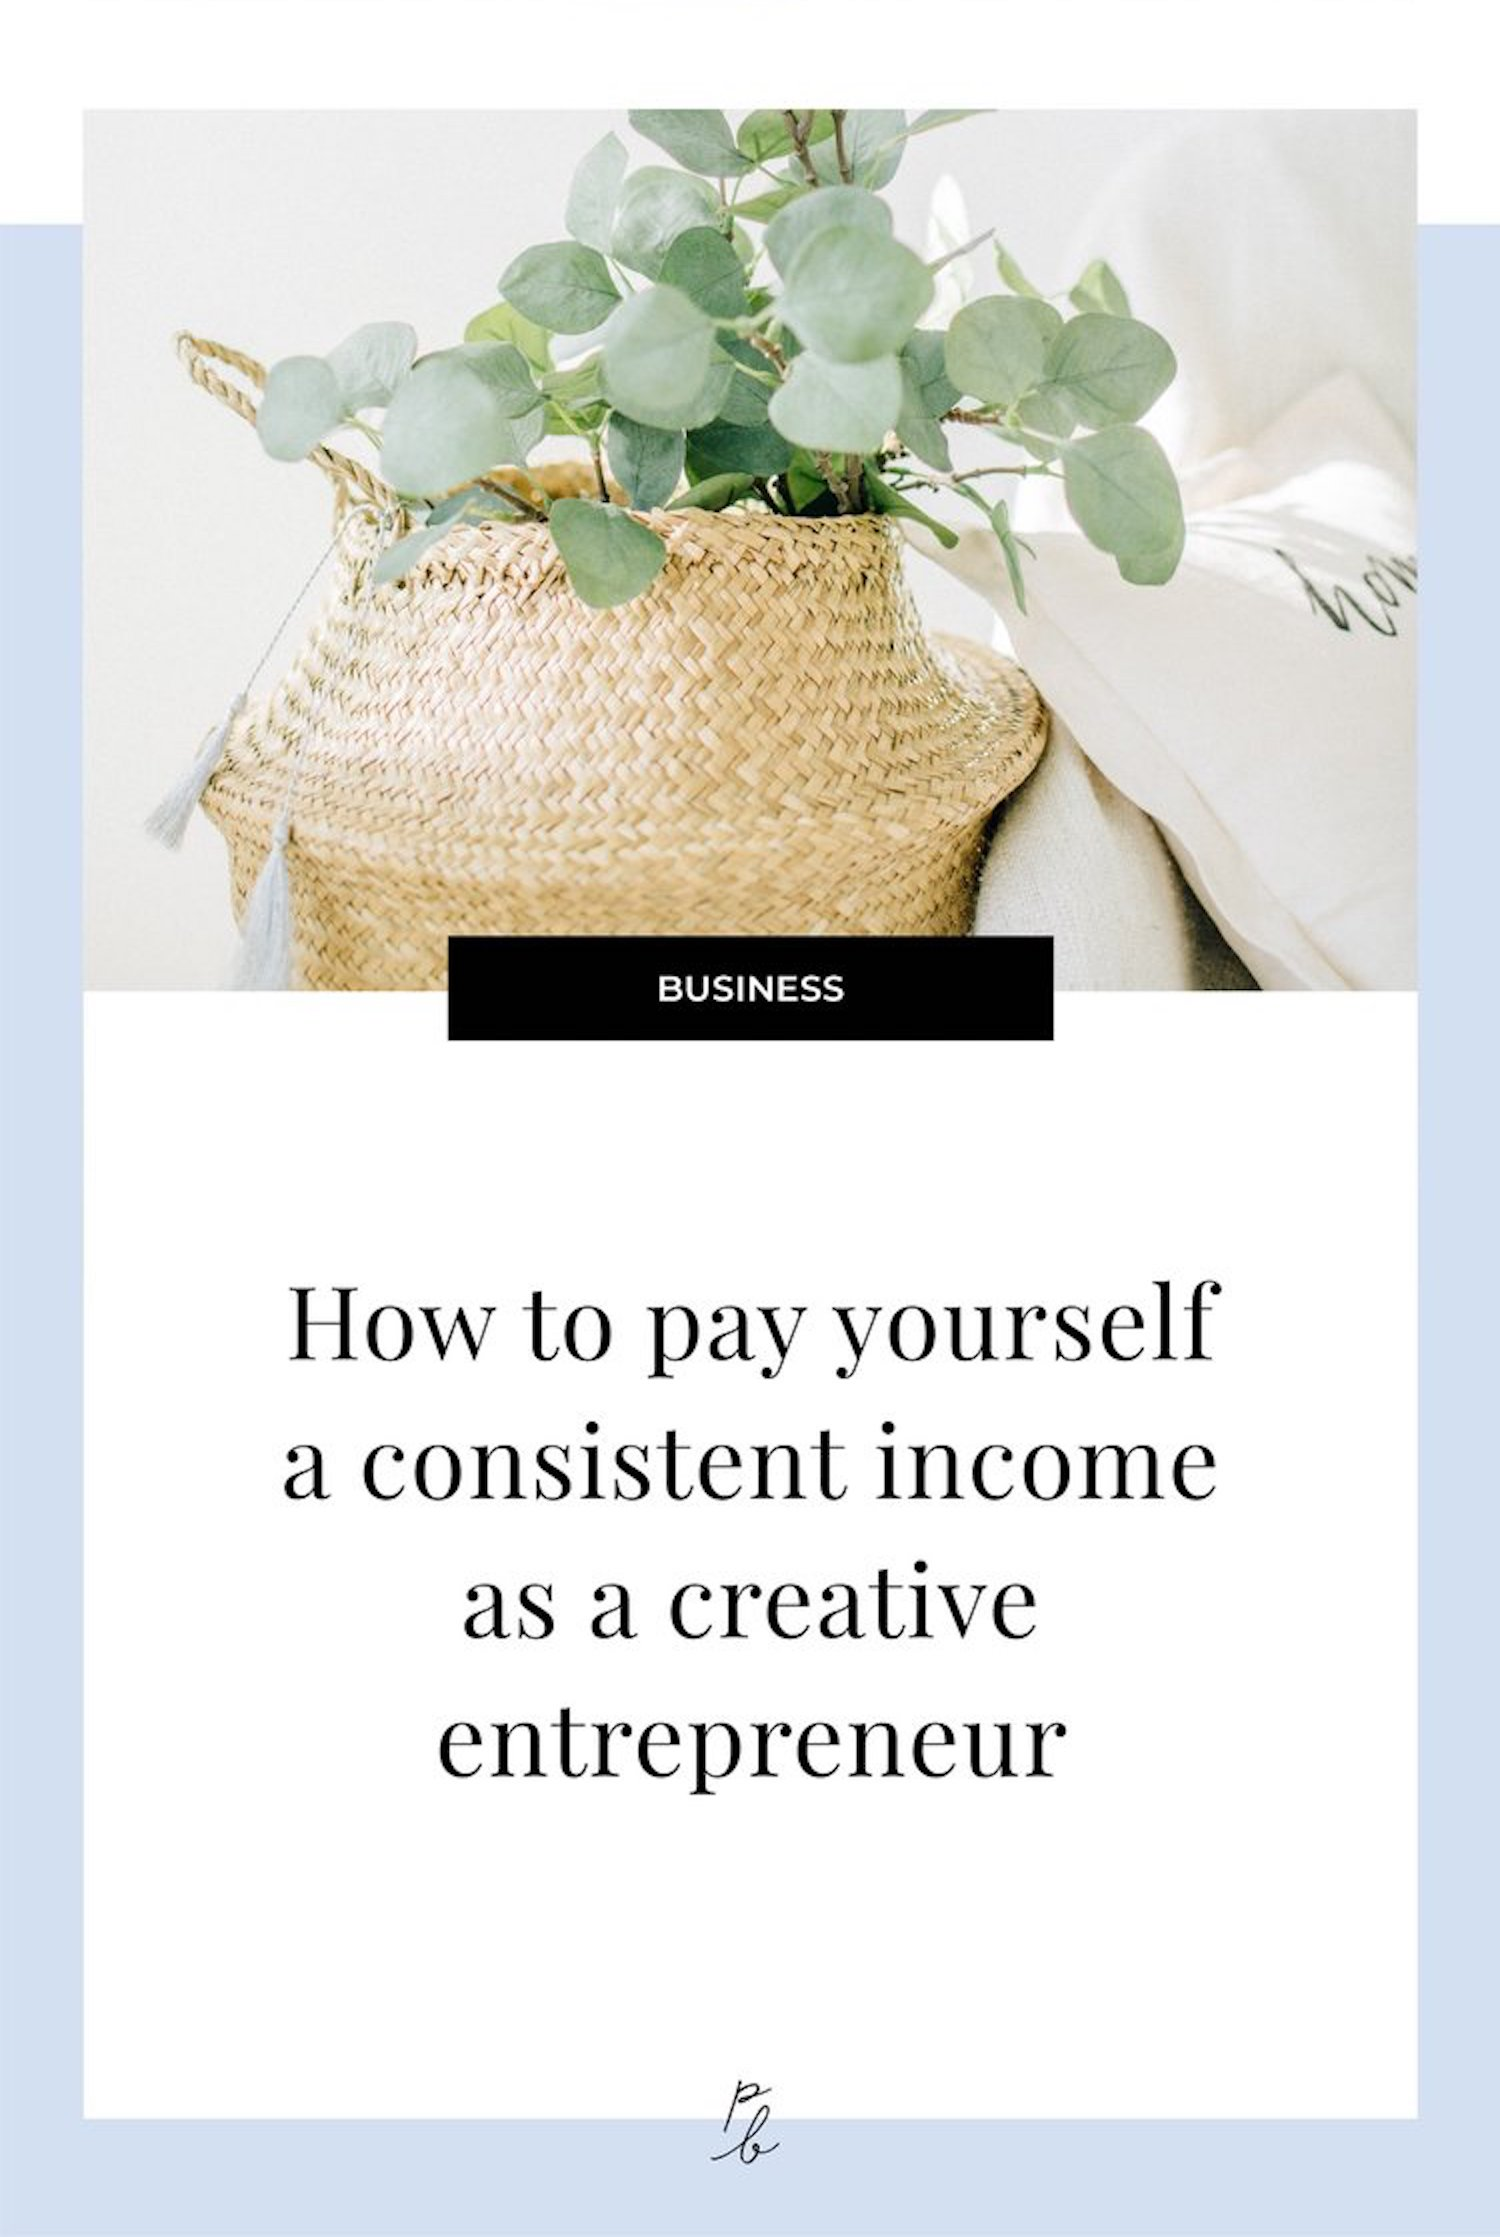 How to pay yourself a consistent income as a creative entrepreneur.jpg